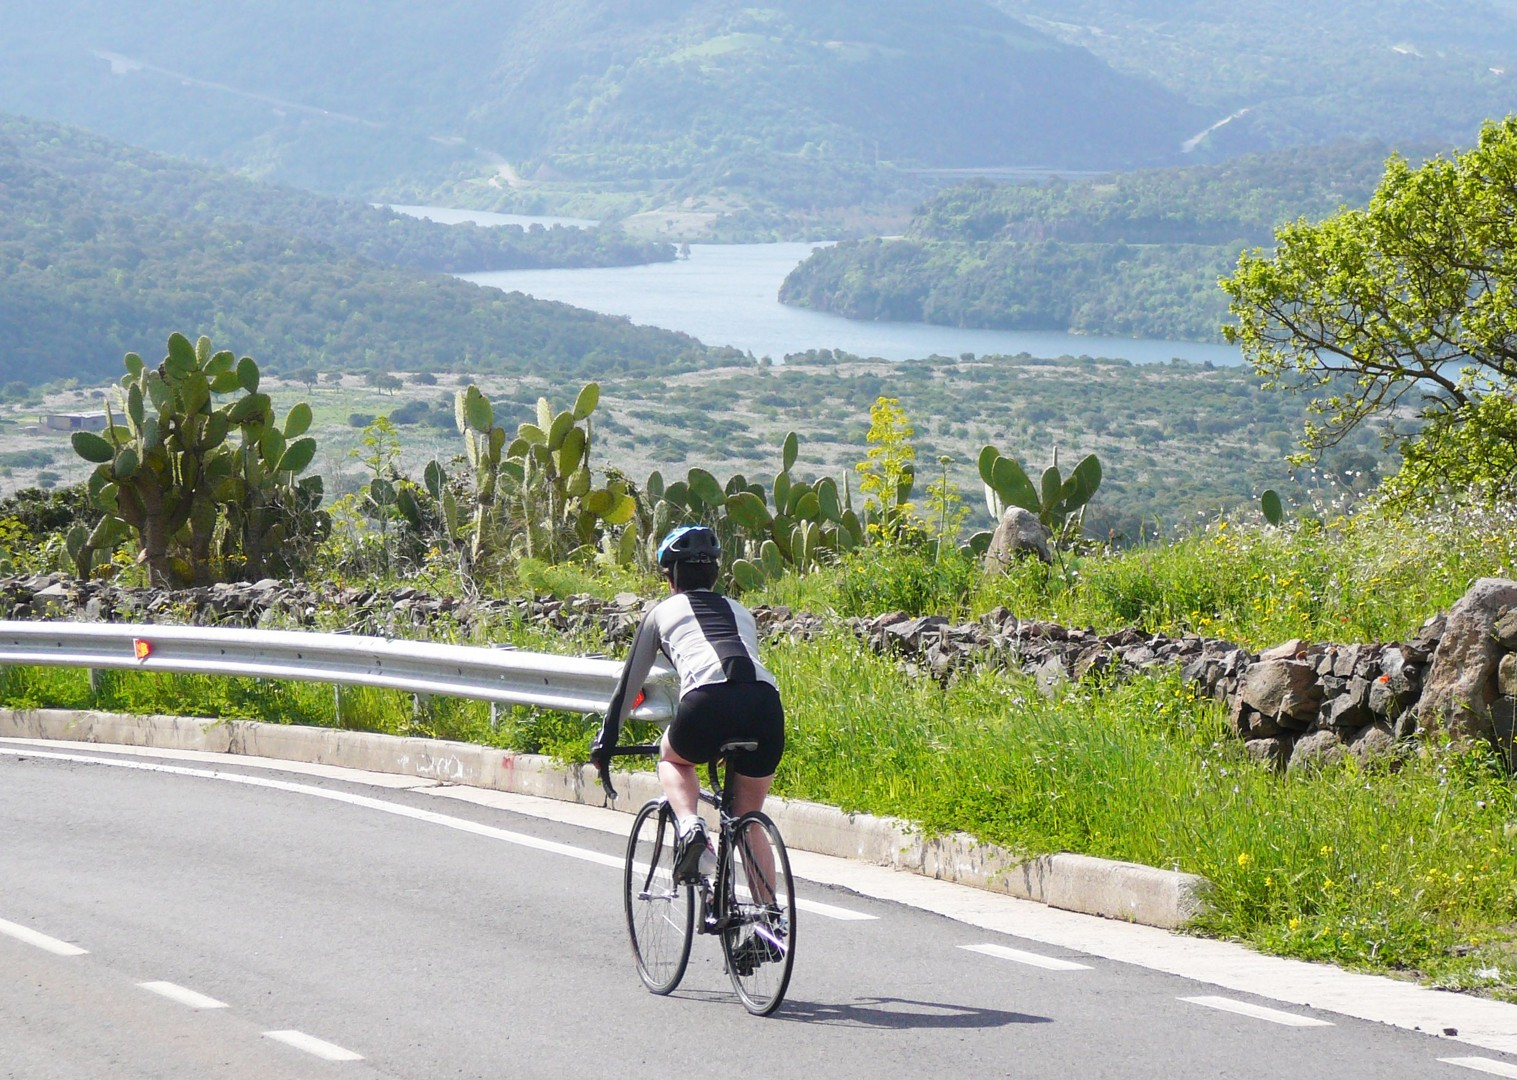 Self-Guided-Road-Cycling-Holiday-Coastal-Explorer-Sardinia.JPG - Italy - Sardinia - Coastal Explorer - Self Guided Road Cycling Holiday - Road Cycling